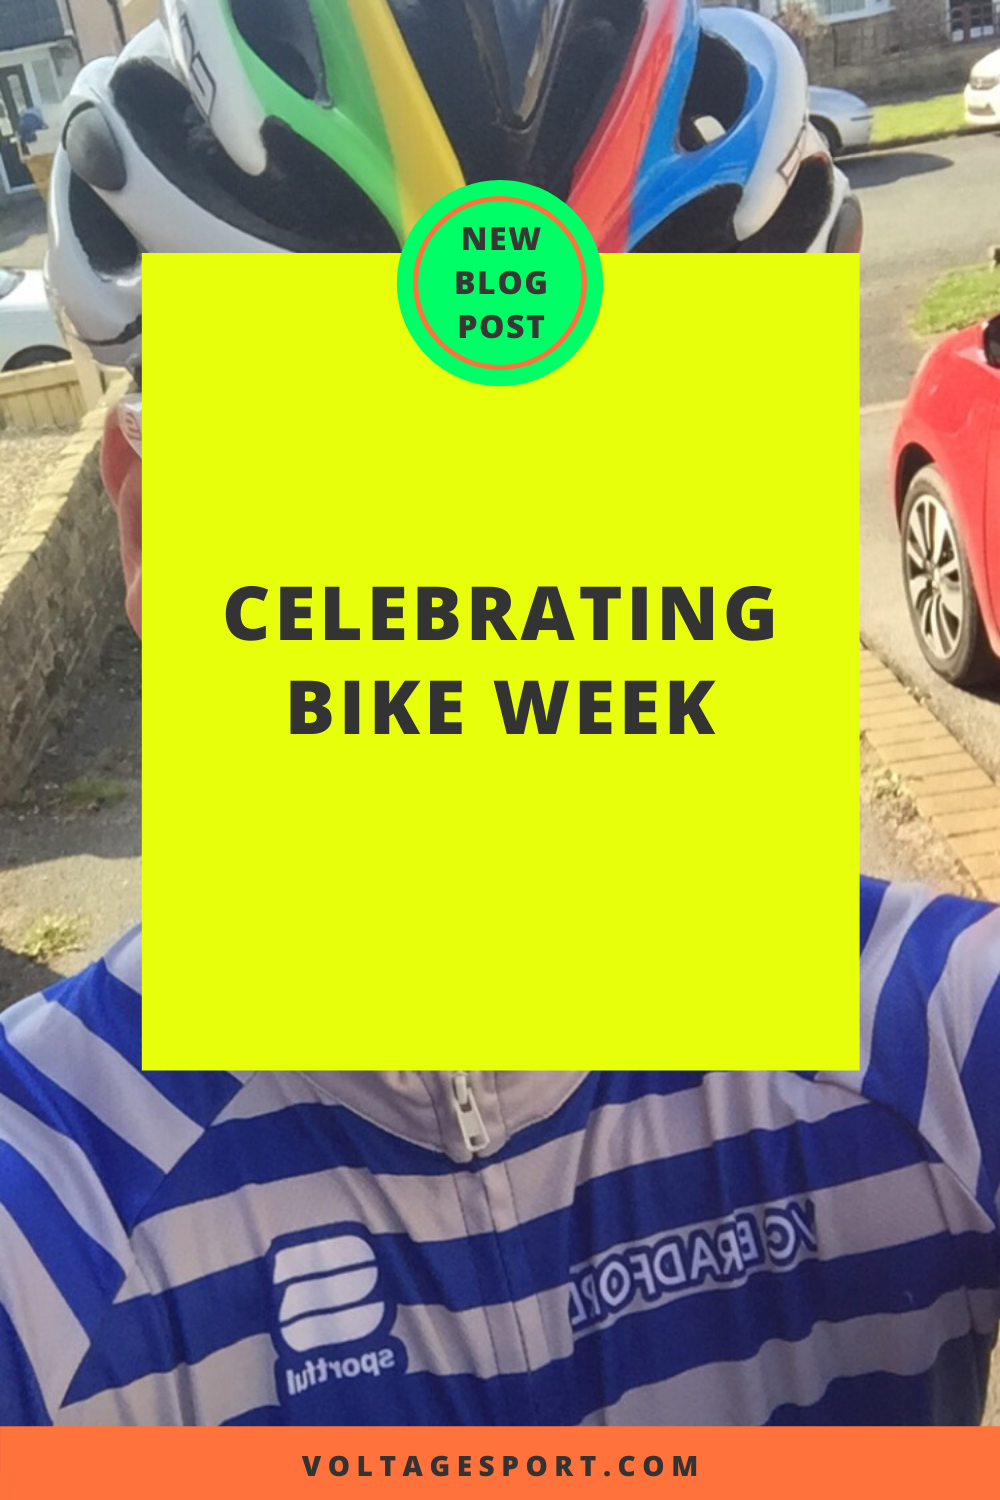 CELEBRATING BIKE WEEK